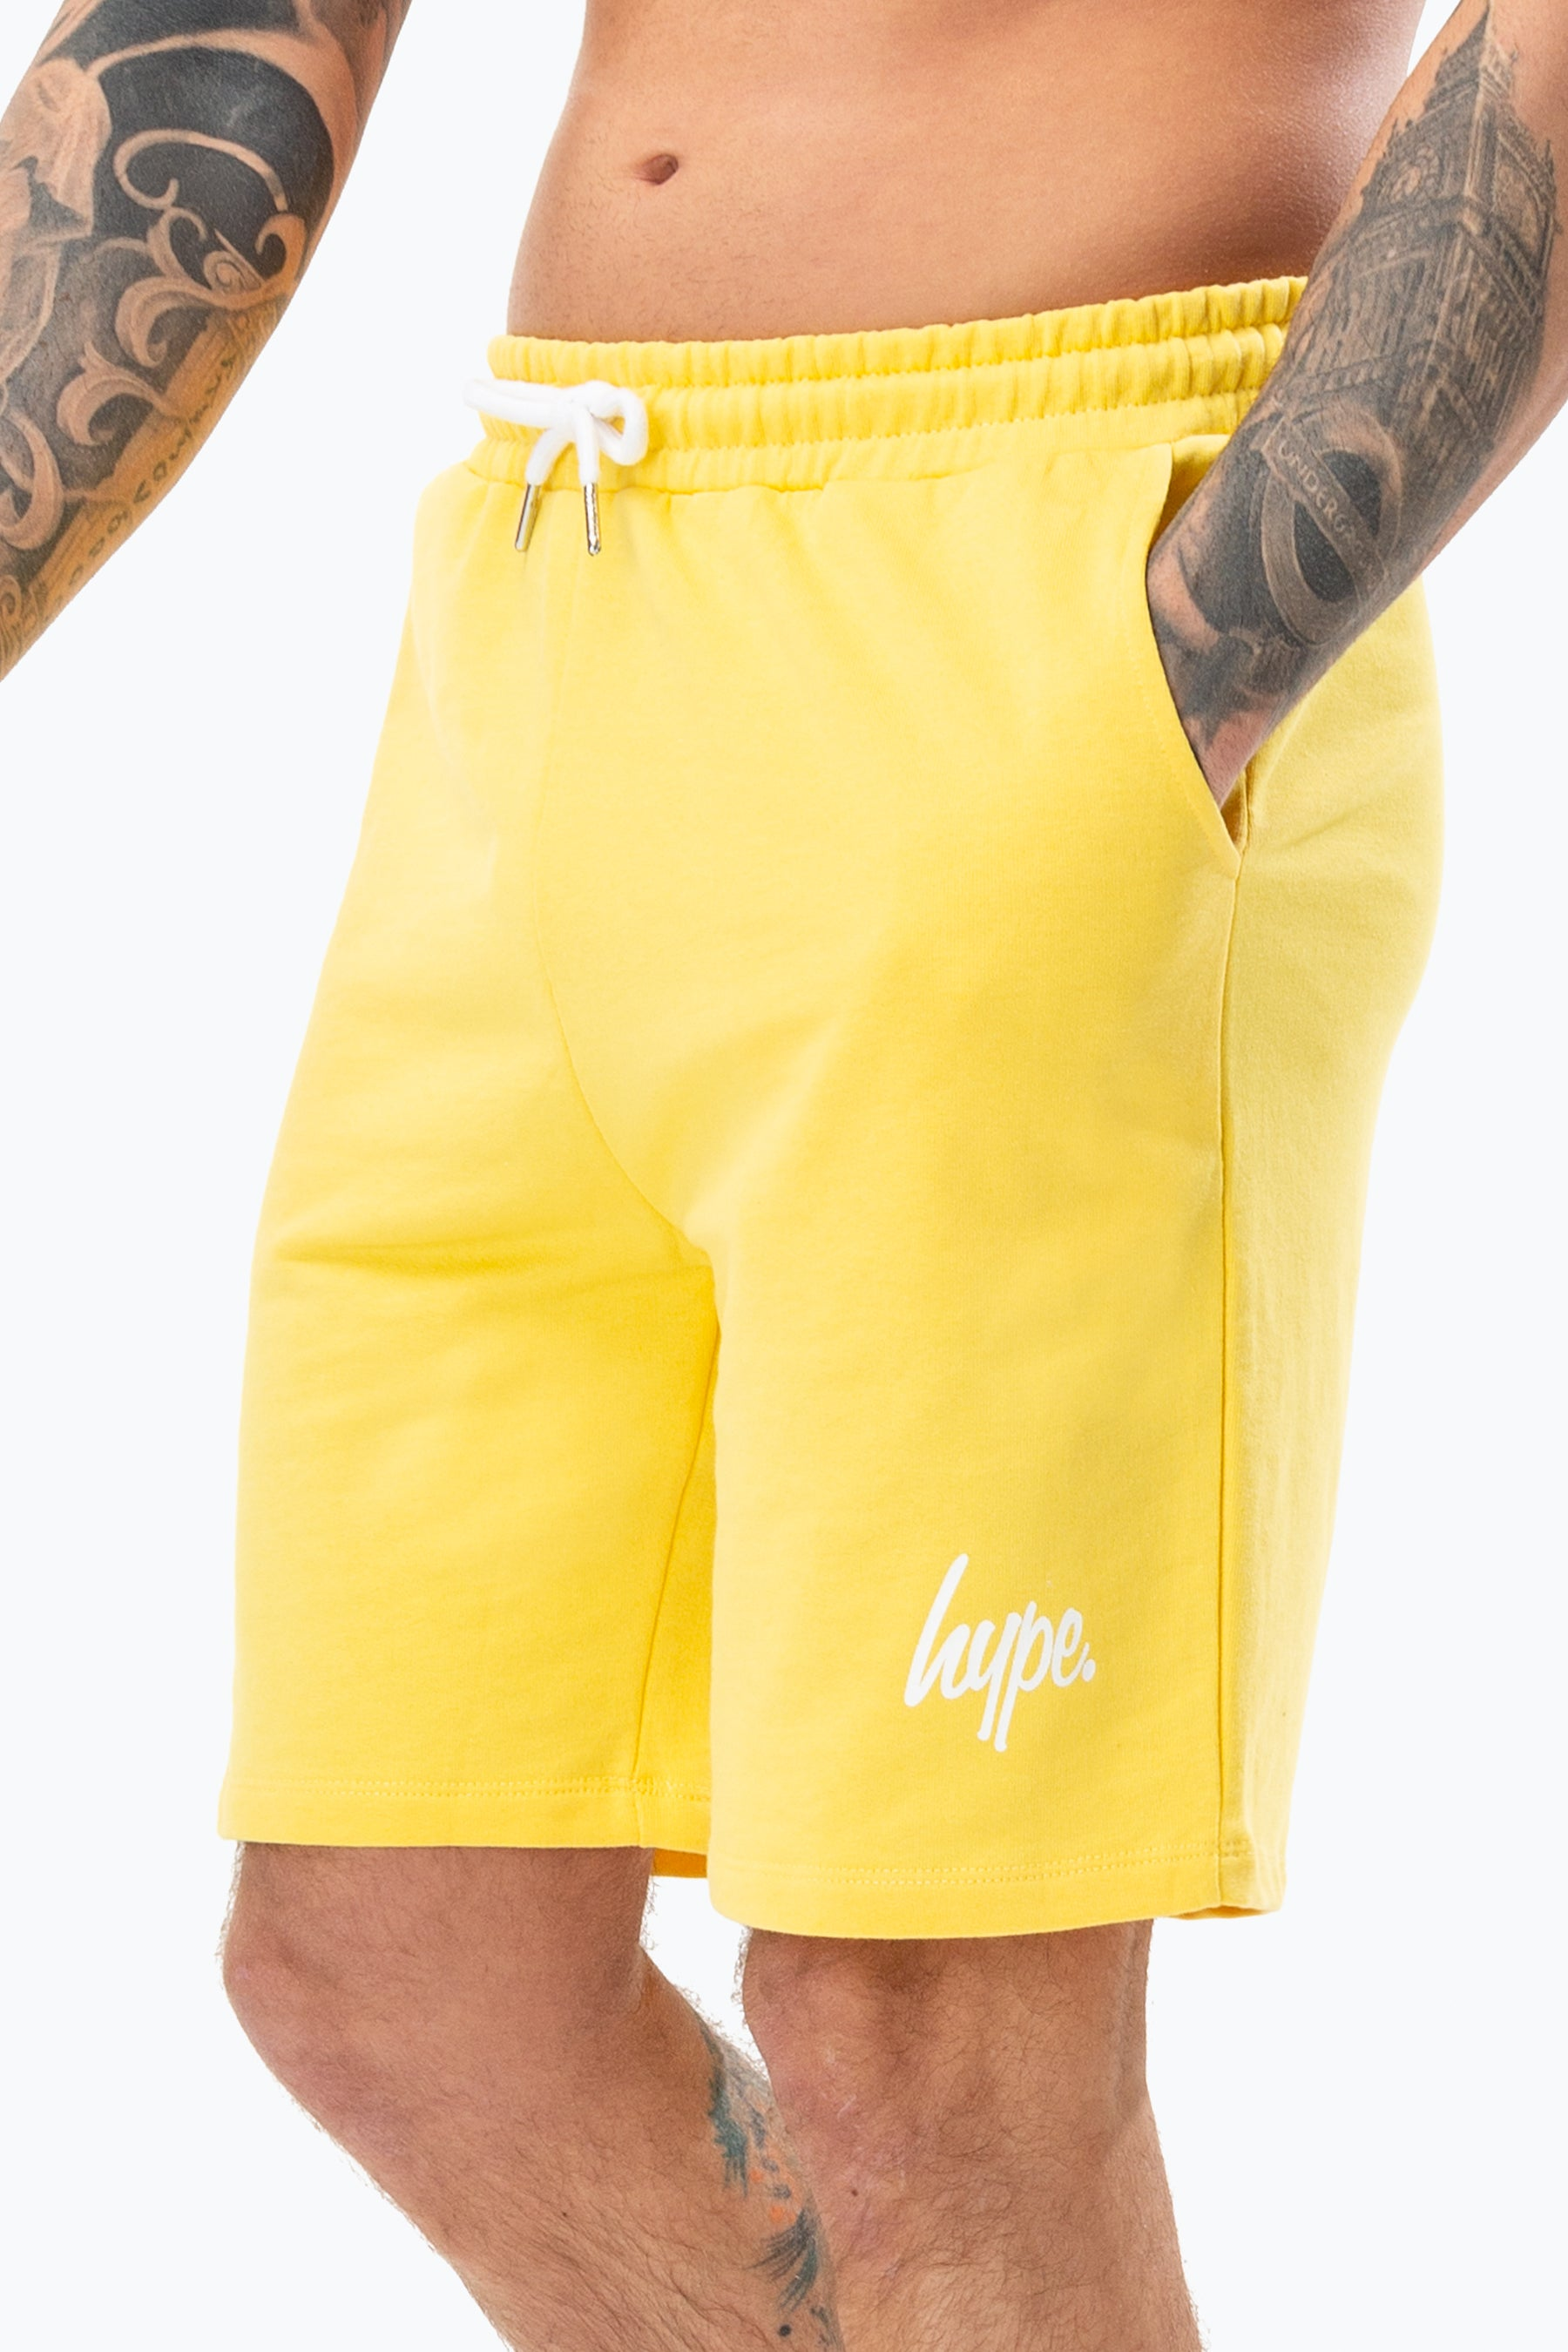 Hype Yellow Script Mens Shorts   Size X-Small